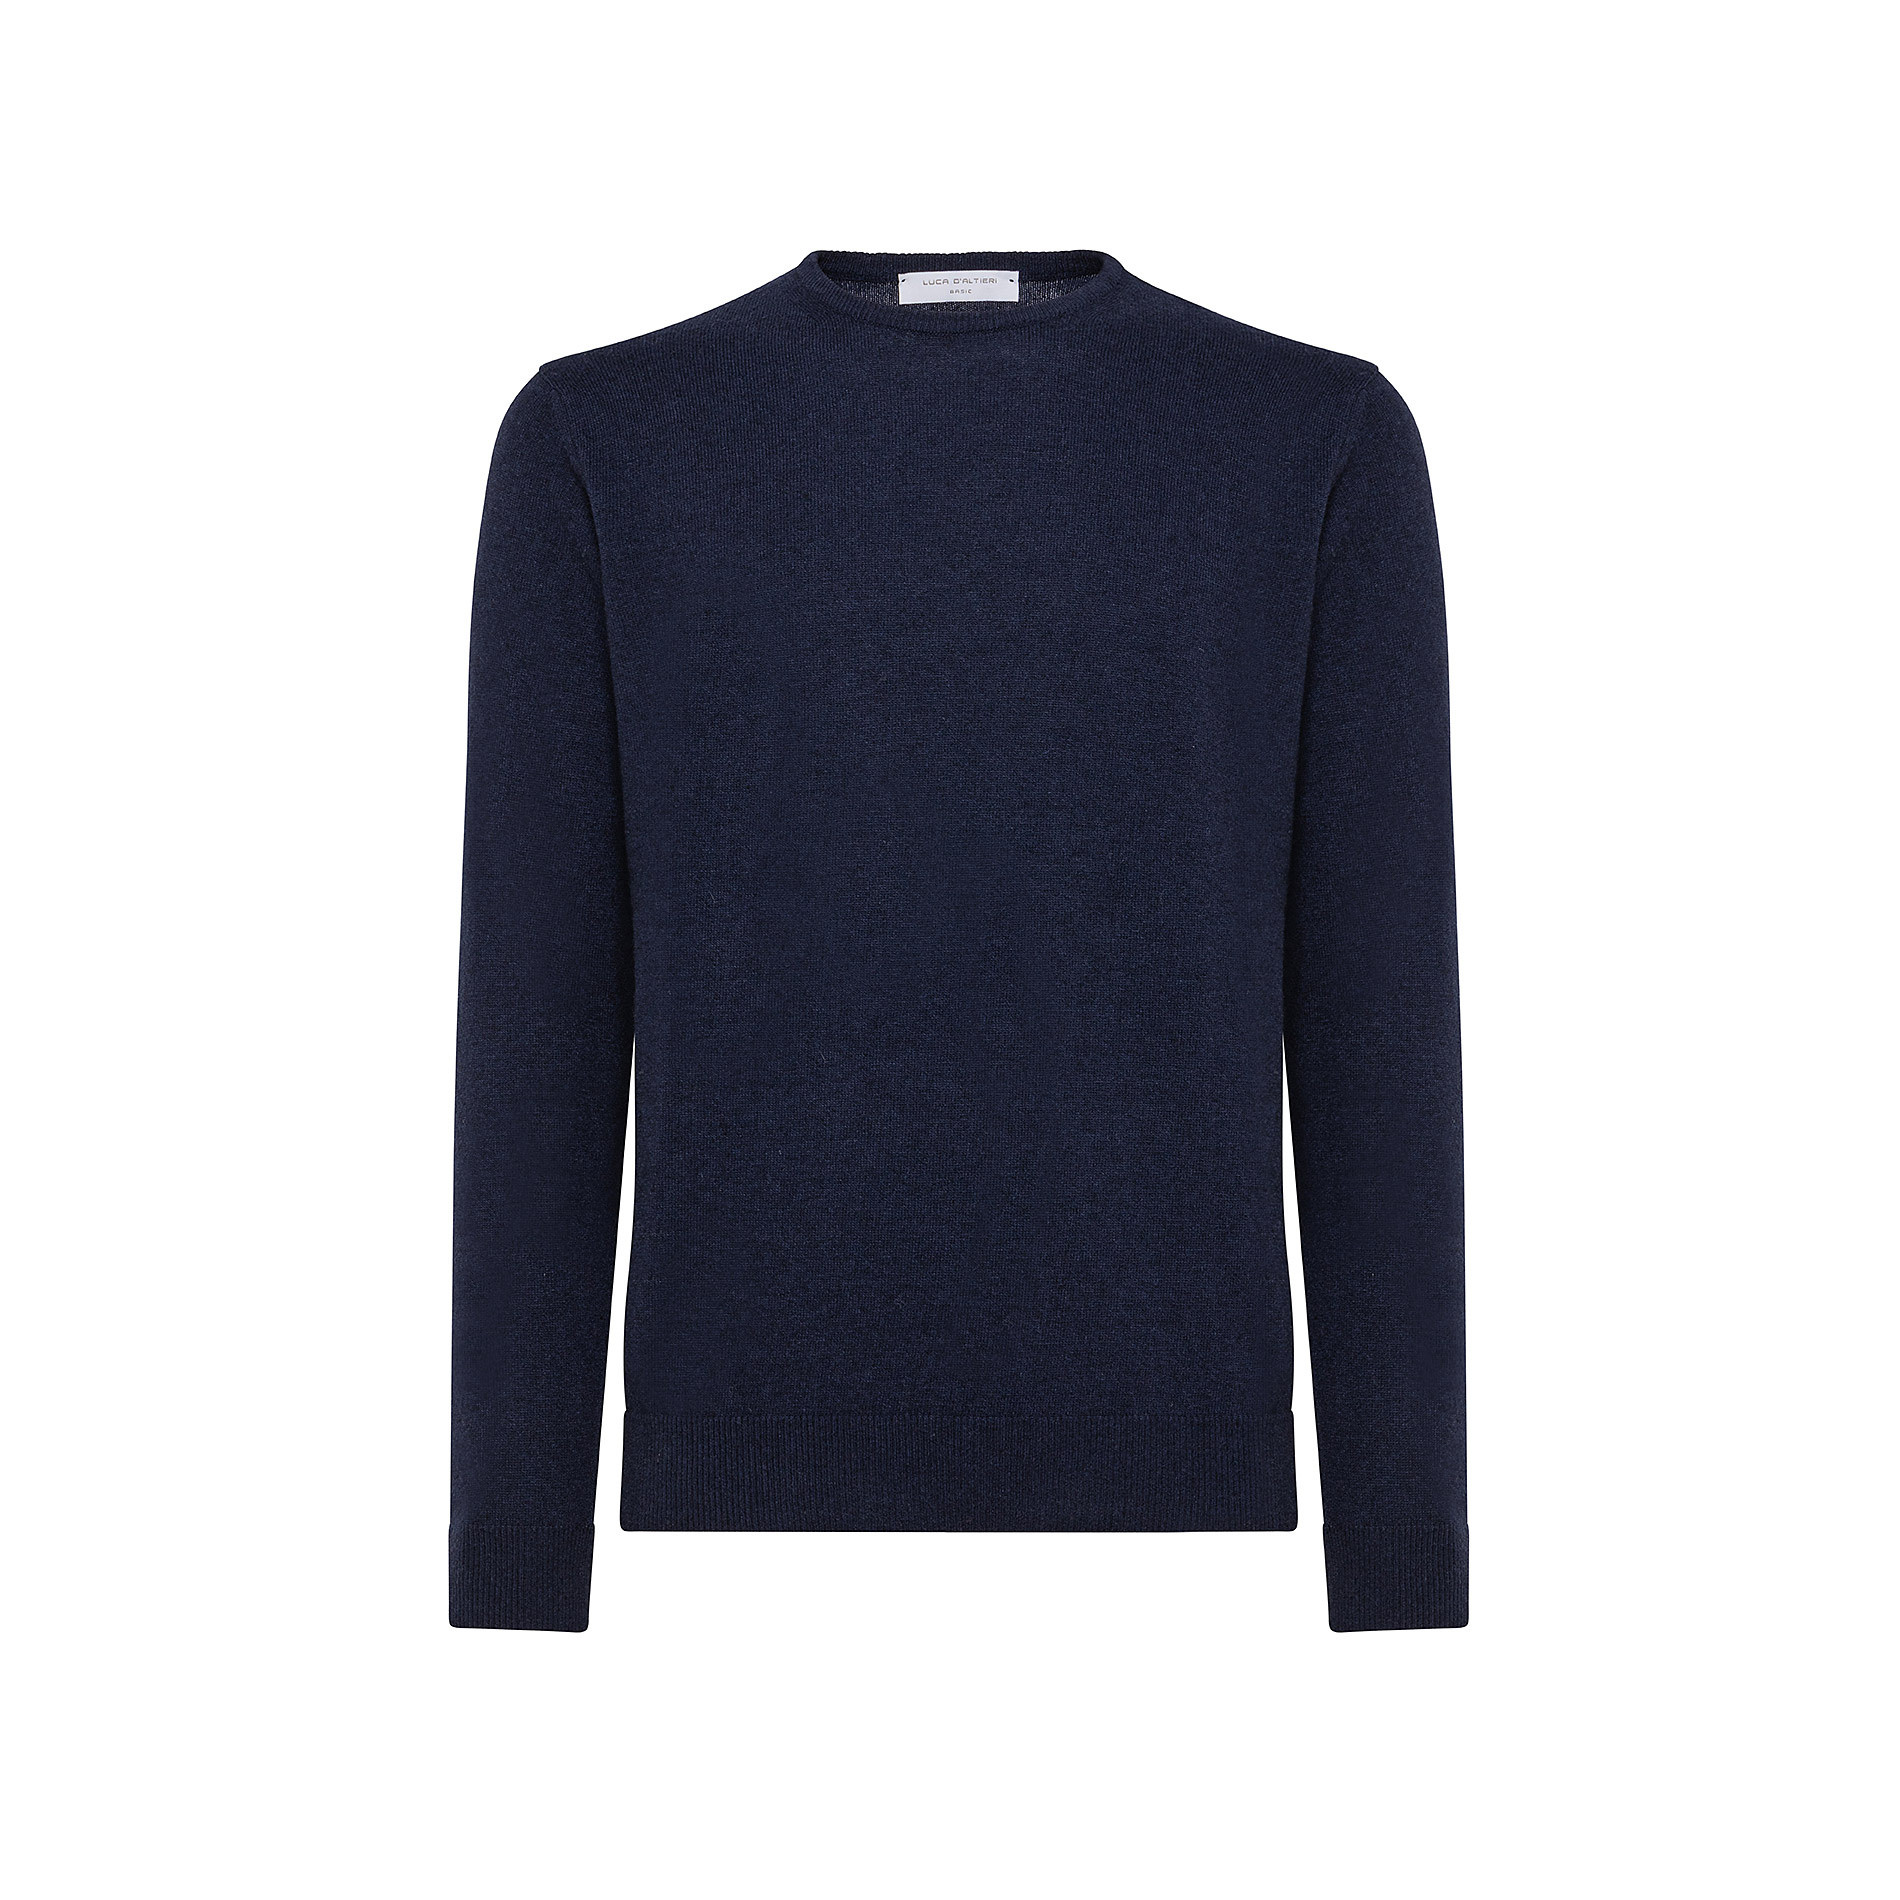 Pullover girocollo in cashmere blend, Blu, large image number 0